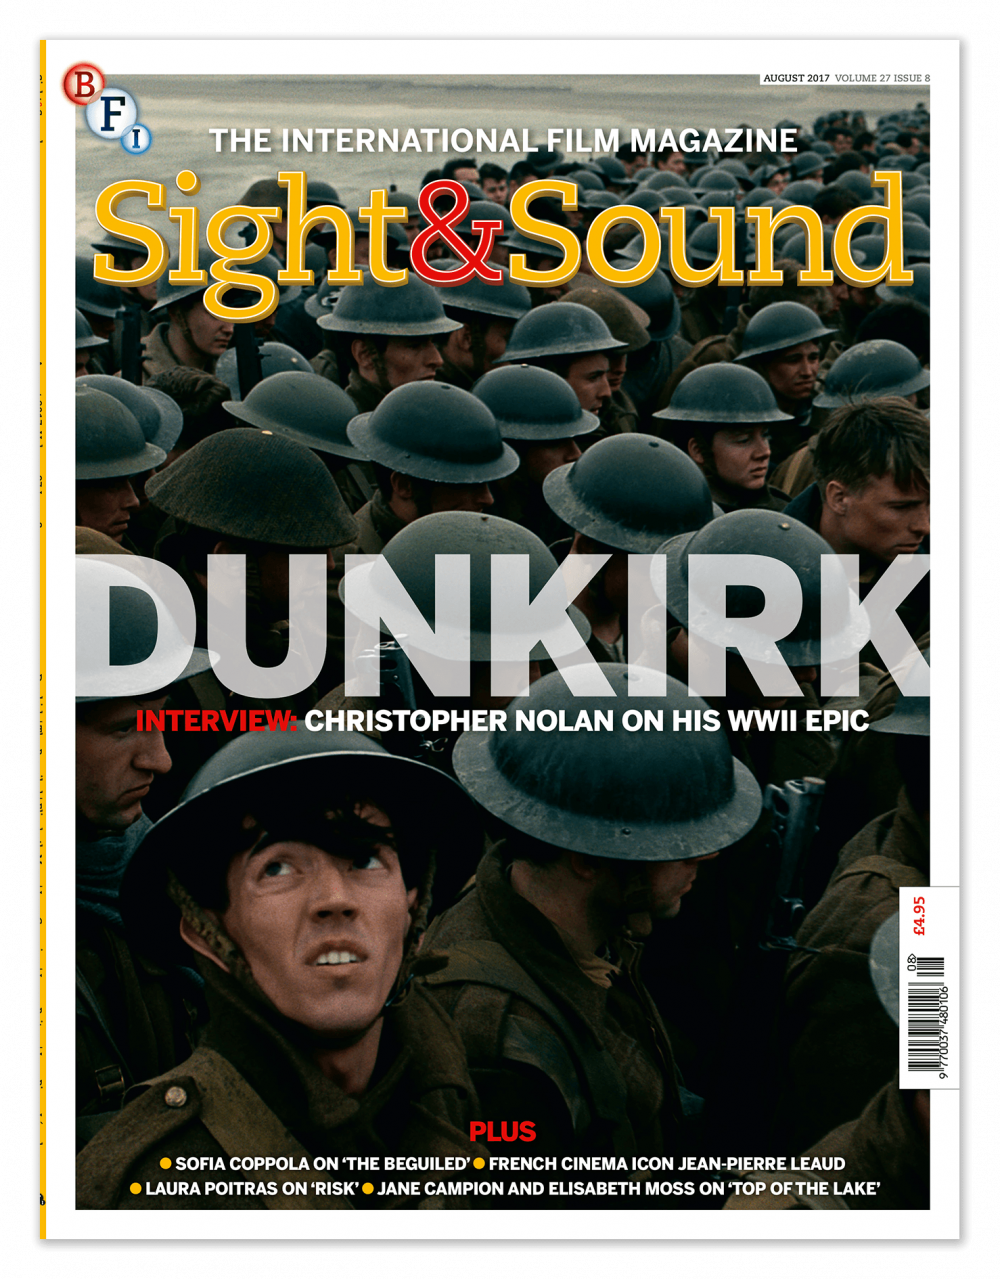 Journal Cover - Title in yellow and red lettering over a promotional photograph for the movie Dunkirk.